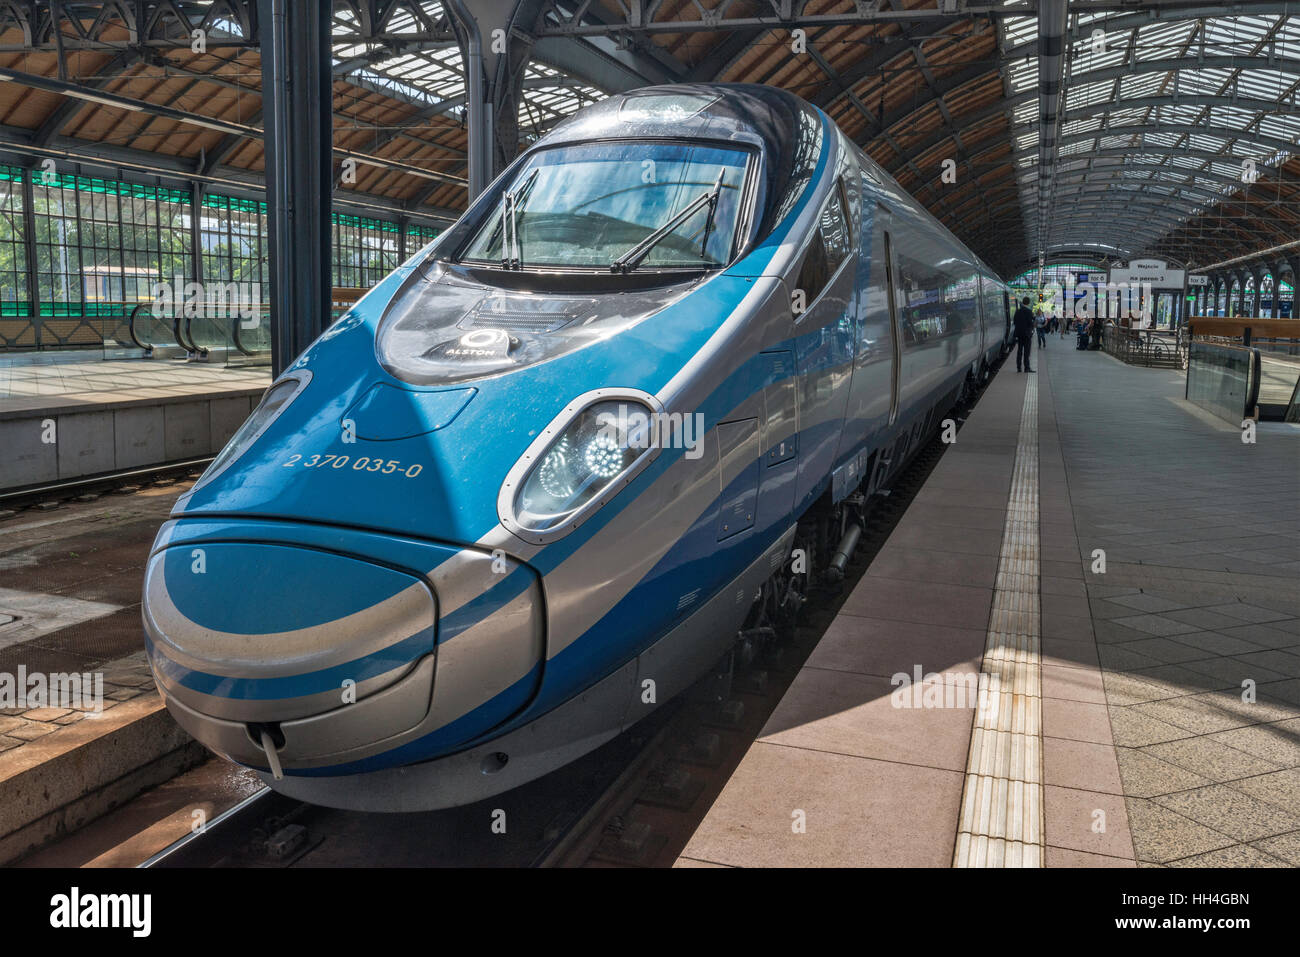 Pendolino High Speed Train at Main Railway Station in Wroclaw, Lower Silesia, Poland - Stock Image